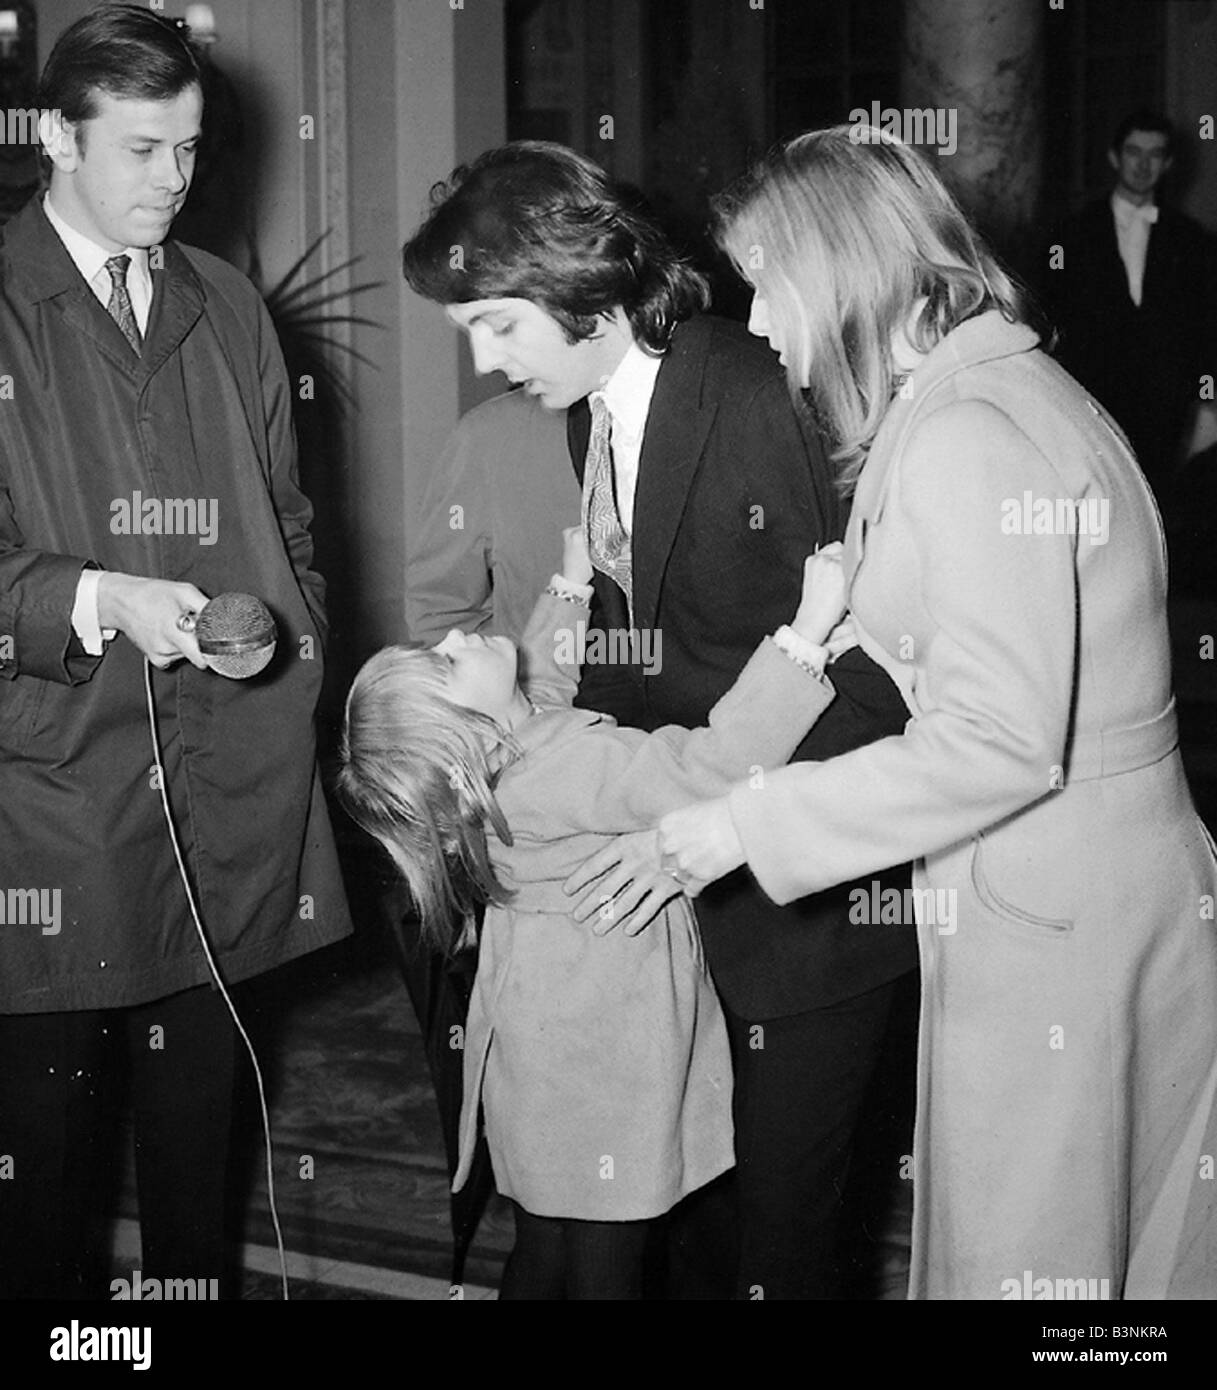 Beatles Files 1969 Paul McCartney On His Wedding Day To Linda With Daughter Heather March